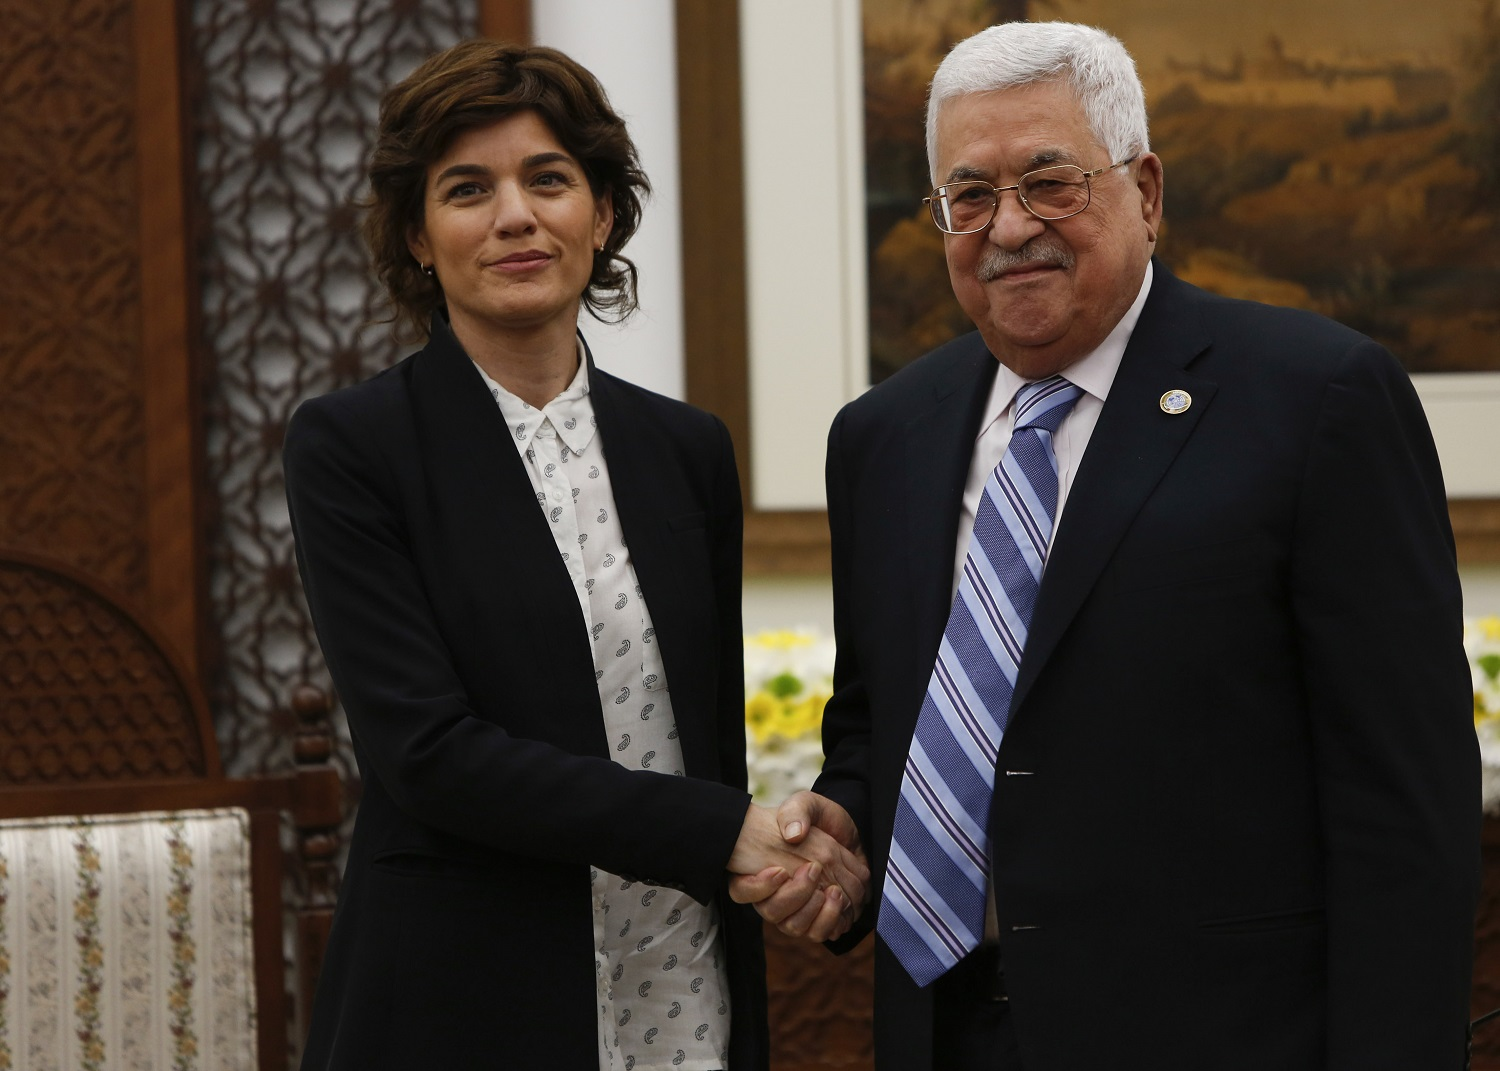 Tamar Zandberg (left) meets with Palestinian president Mahmoud Abbas in Ramallah in March 2019 (AFP)